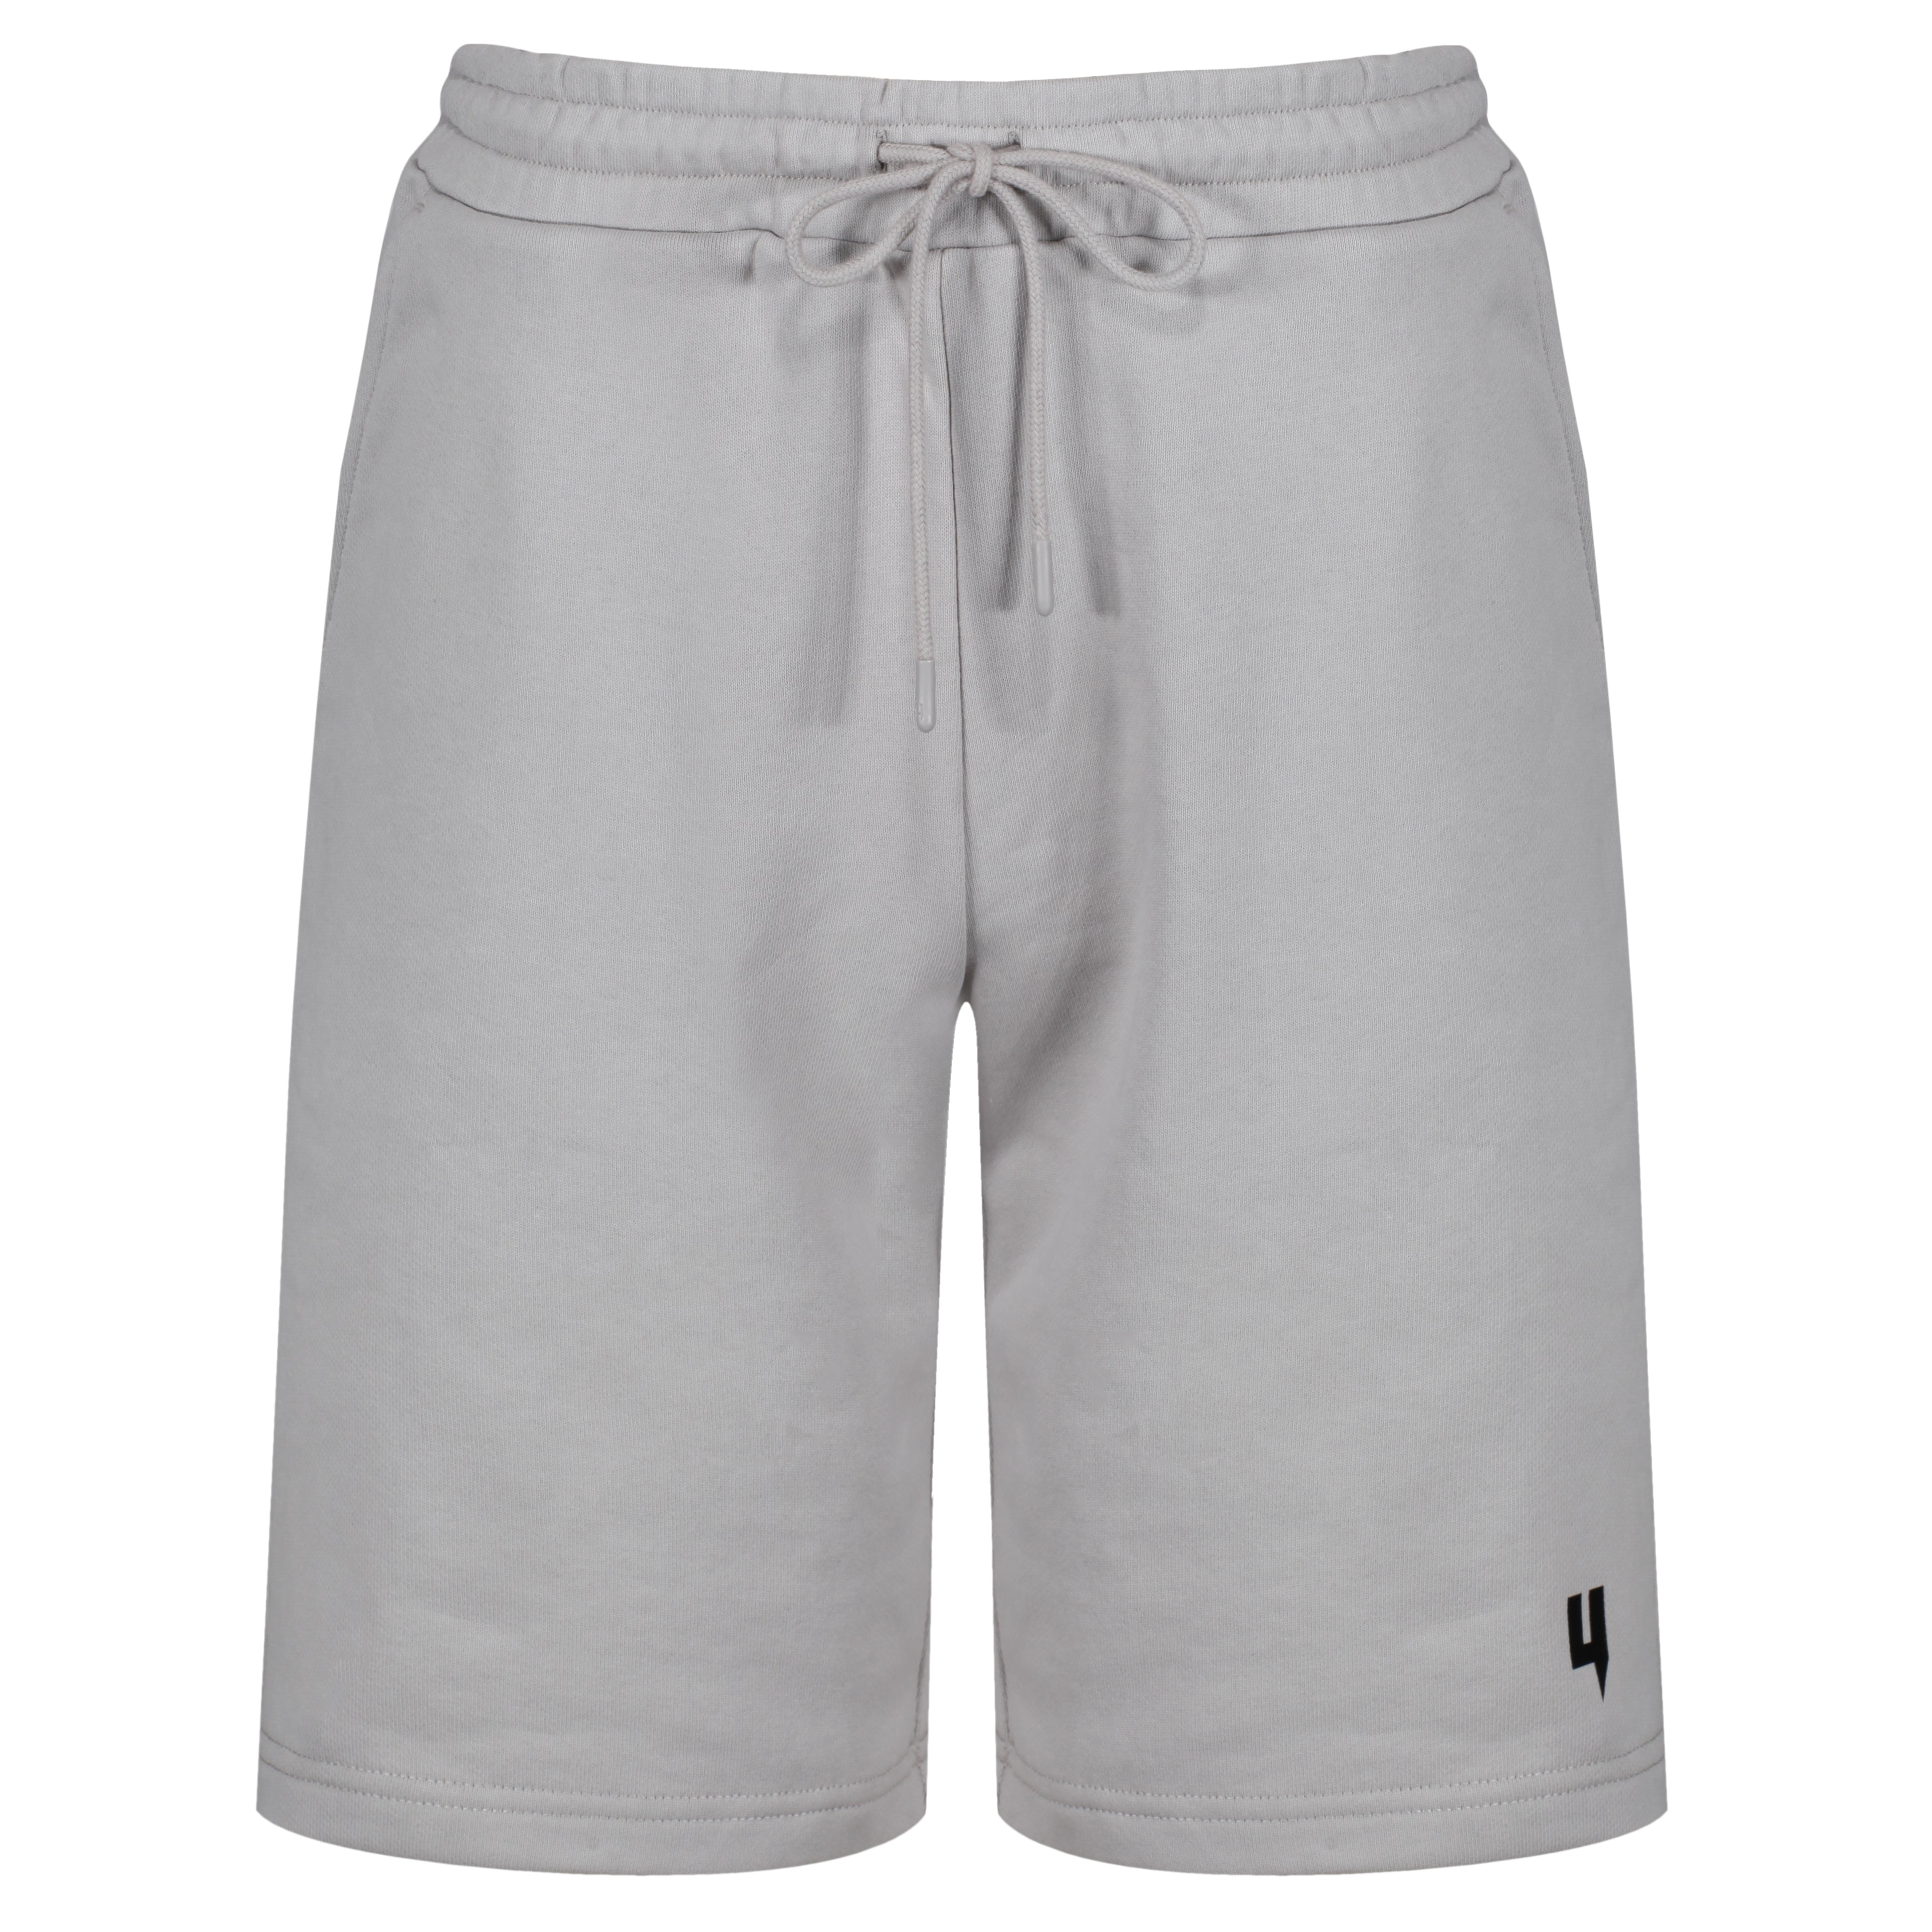 YELIR WORLD Y LOGO SHORTS SOLID GREY